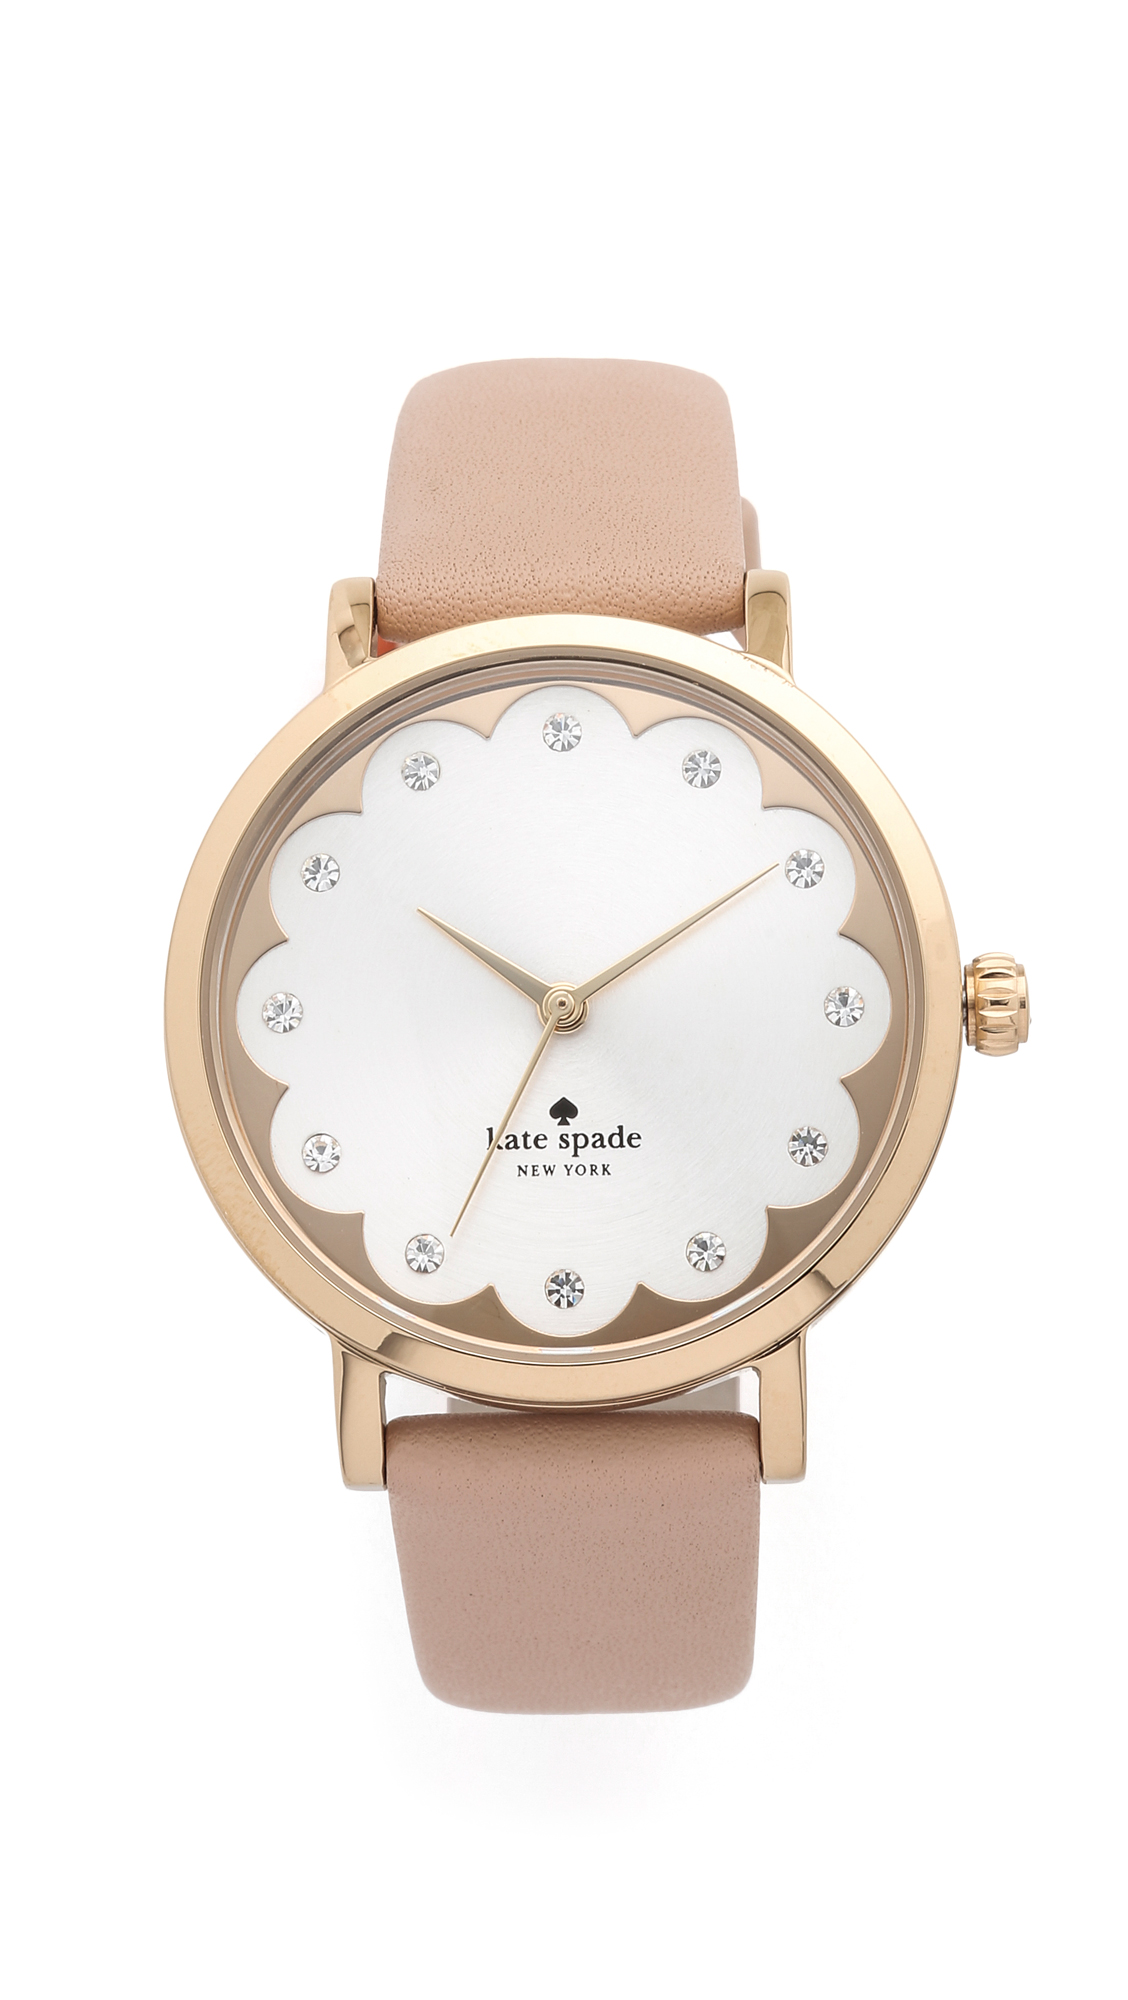 Kate Spade New York Novelty Metro Watch - Vachetta at Shopbop